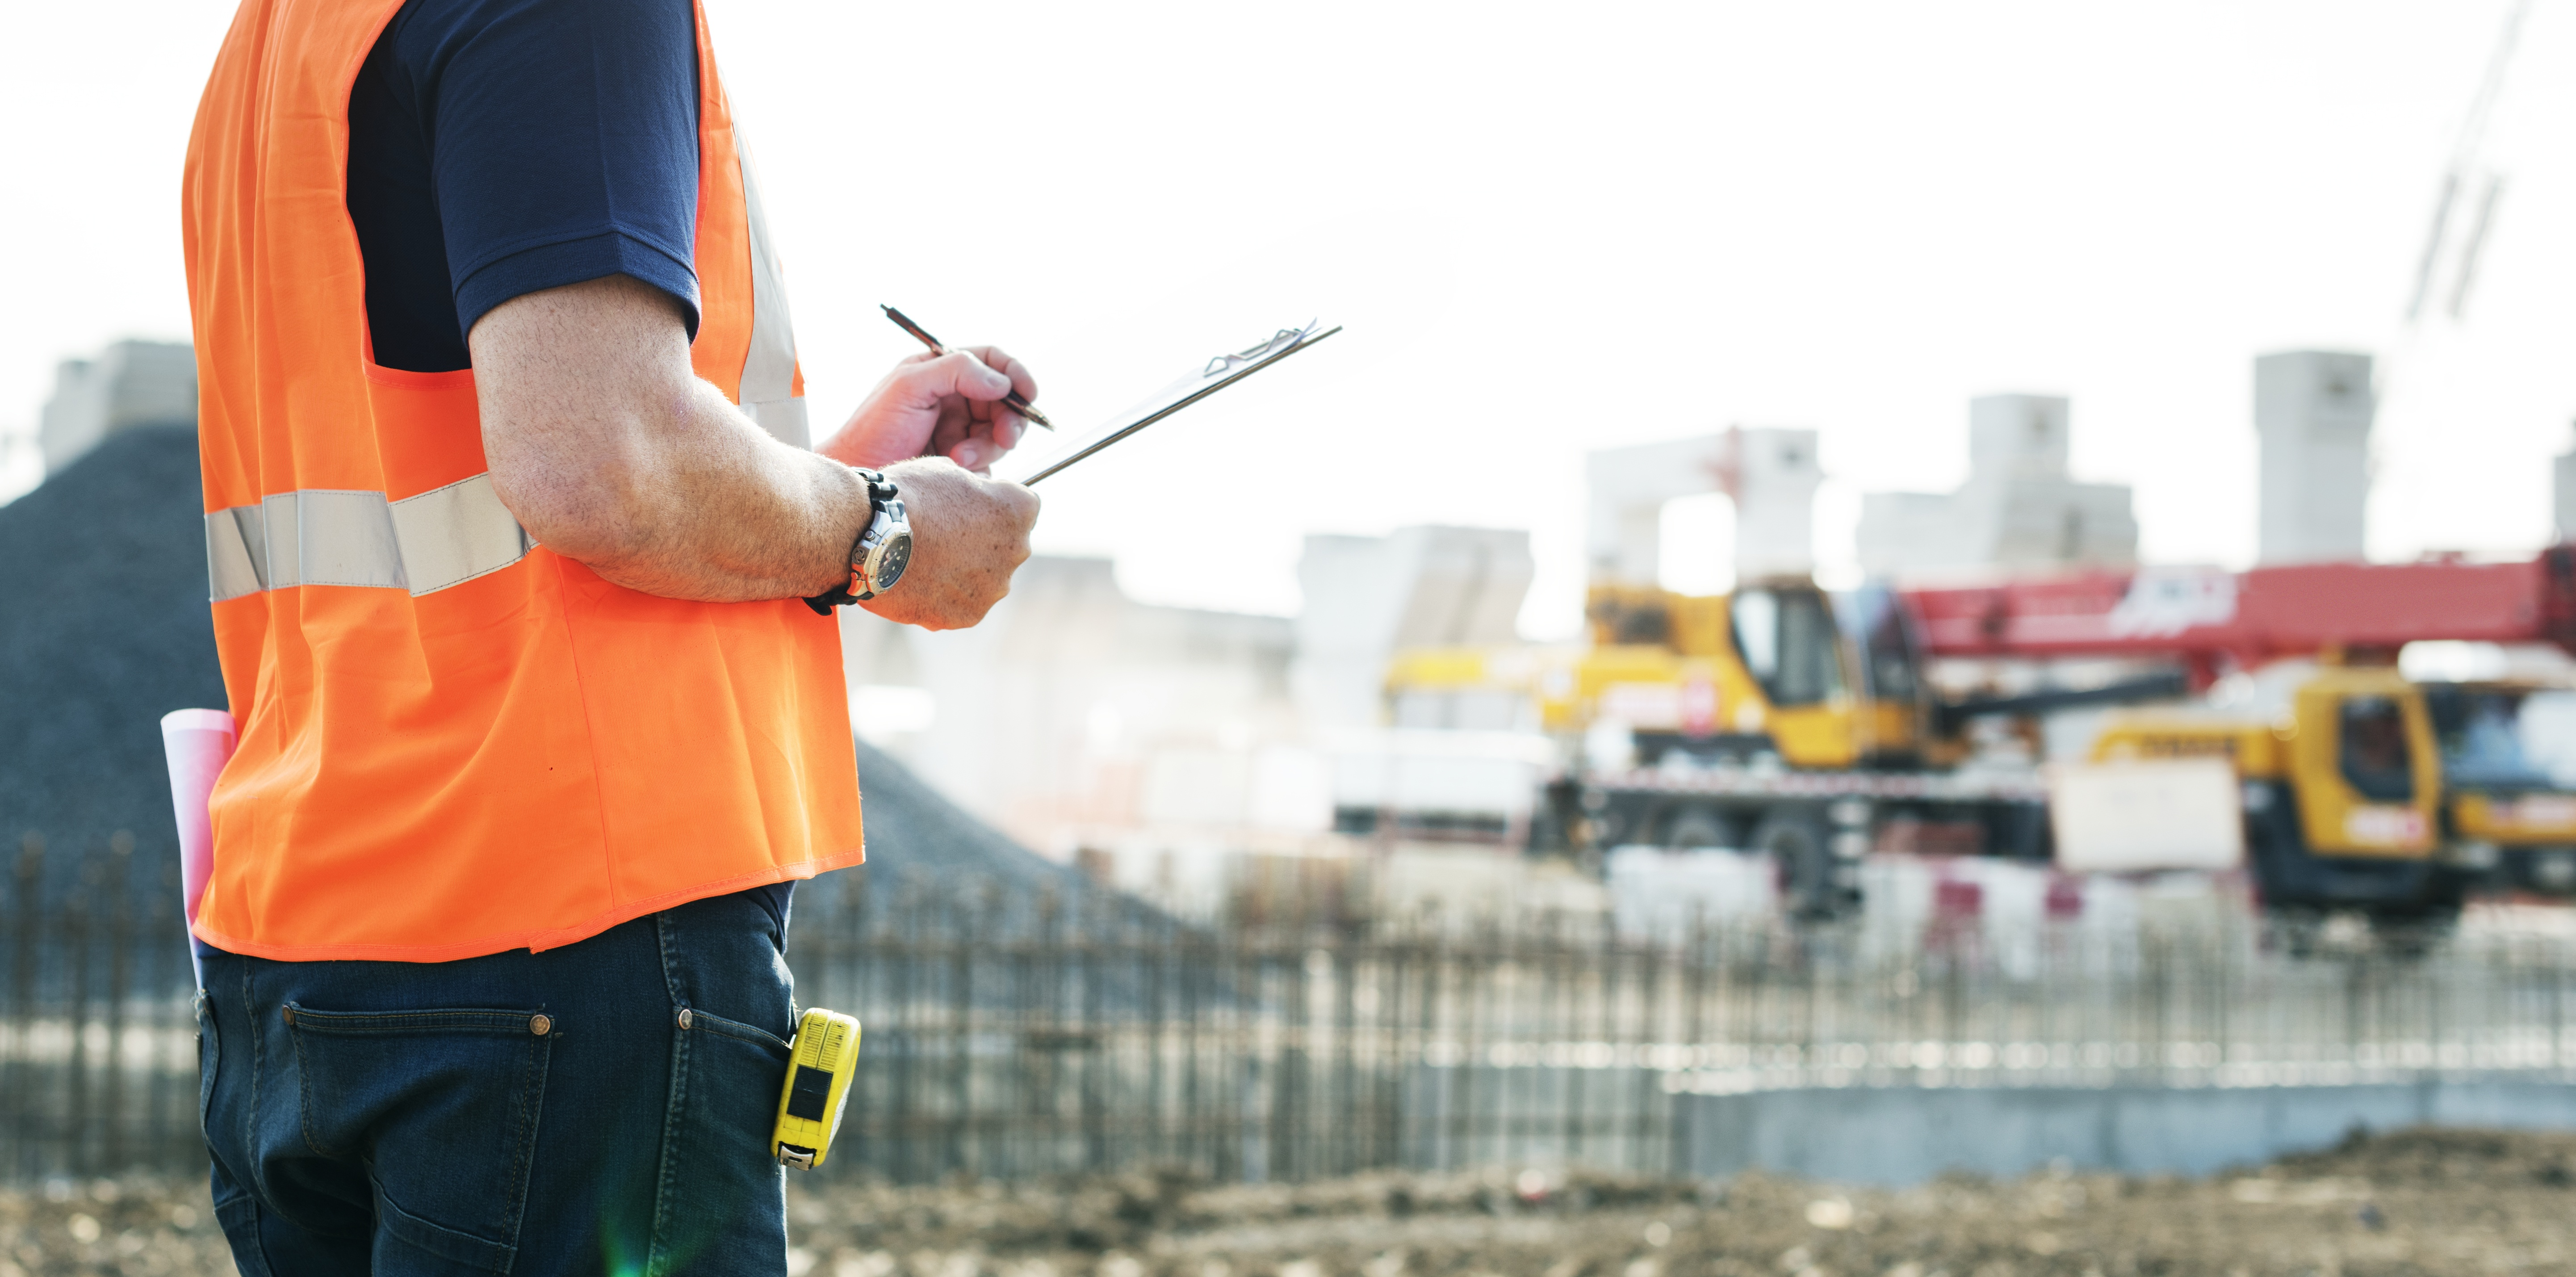 Building Codes & Safety Regulations